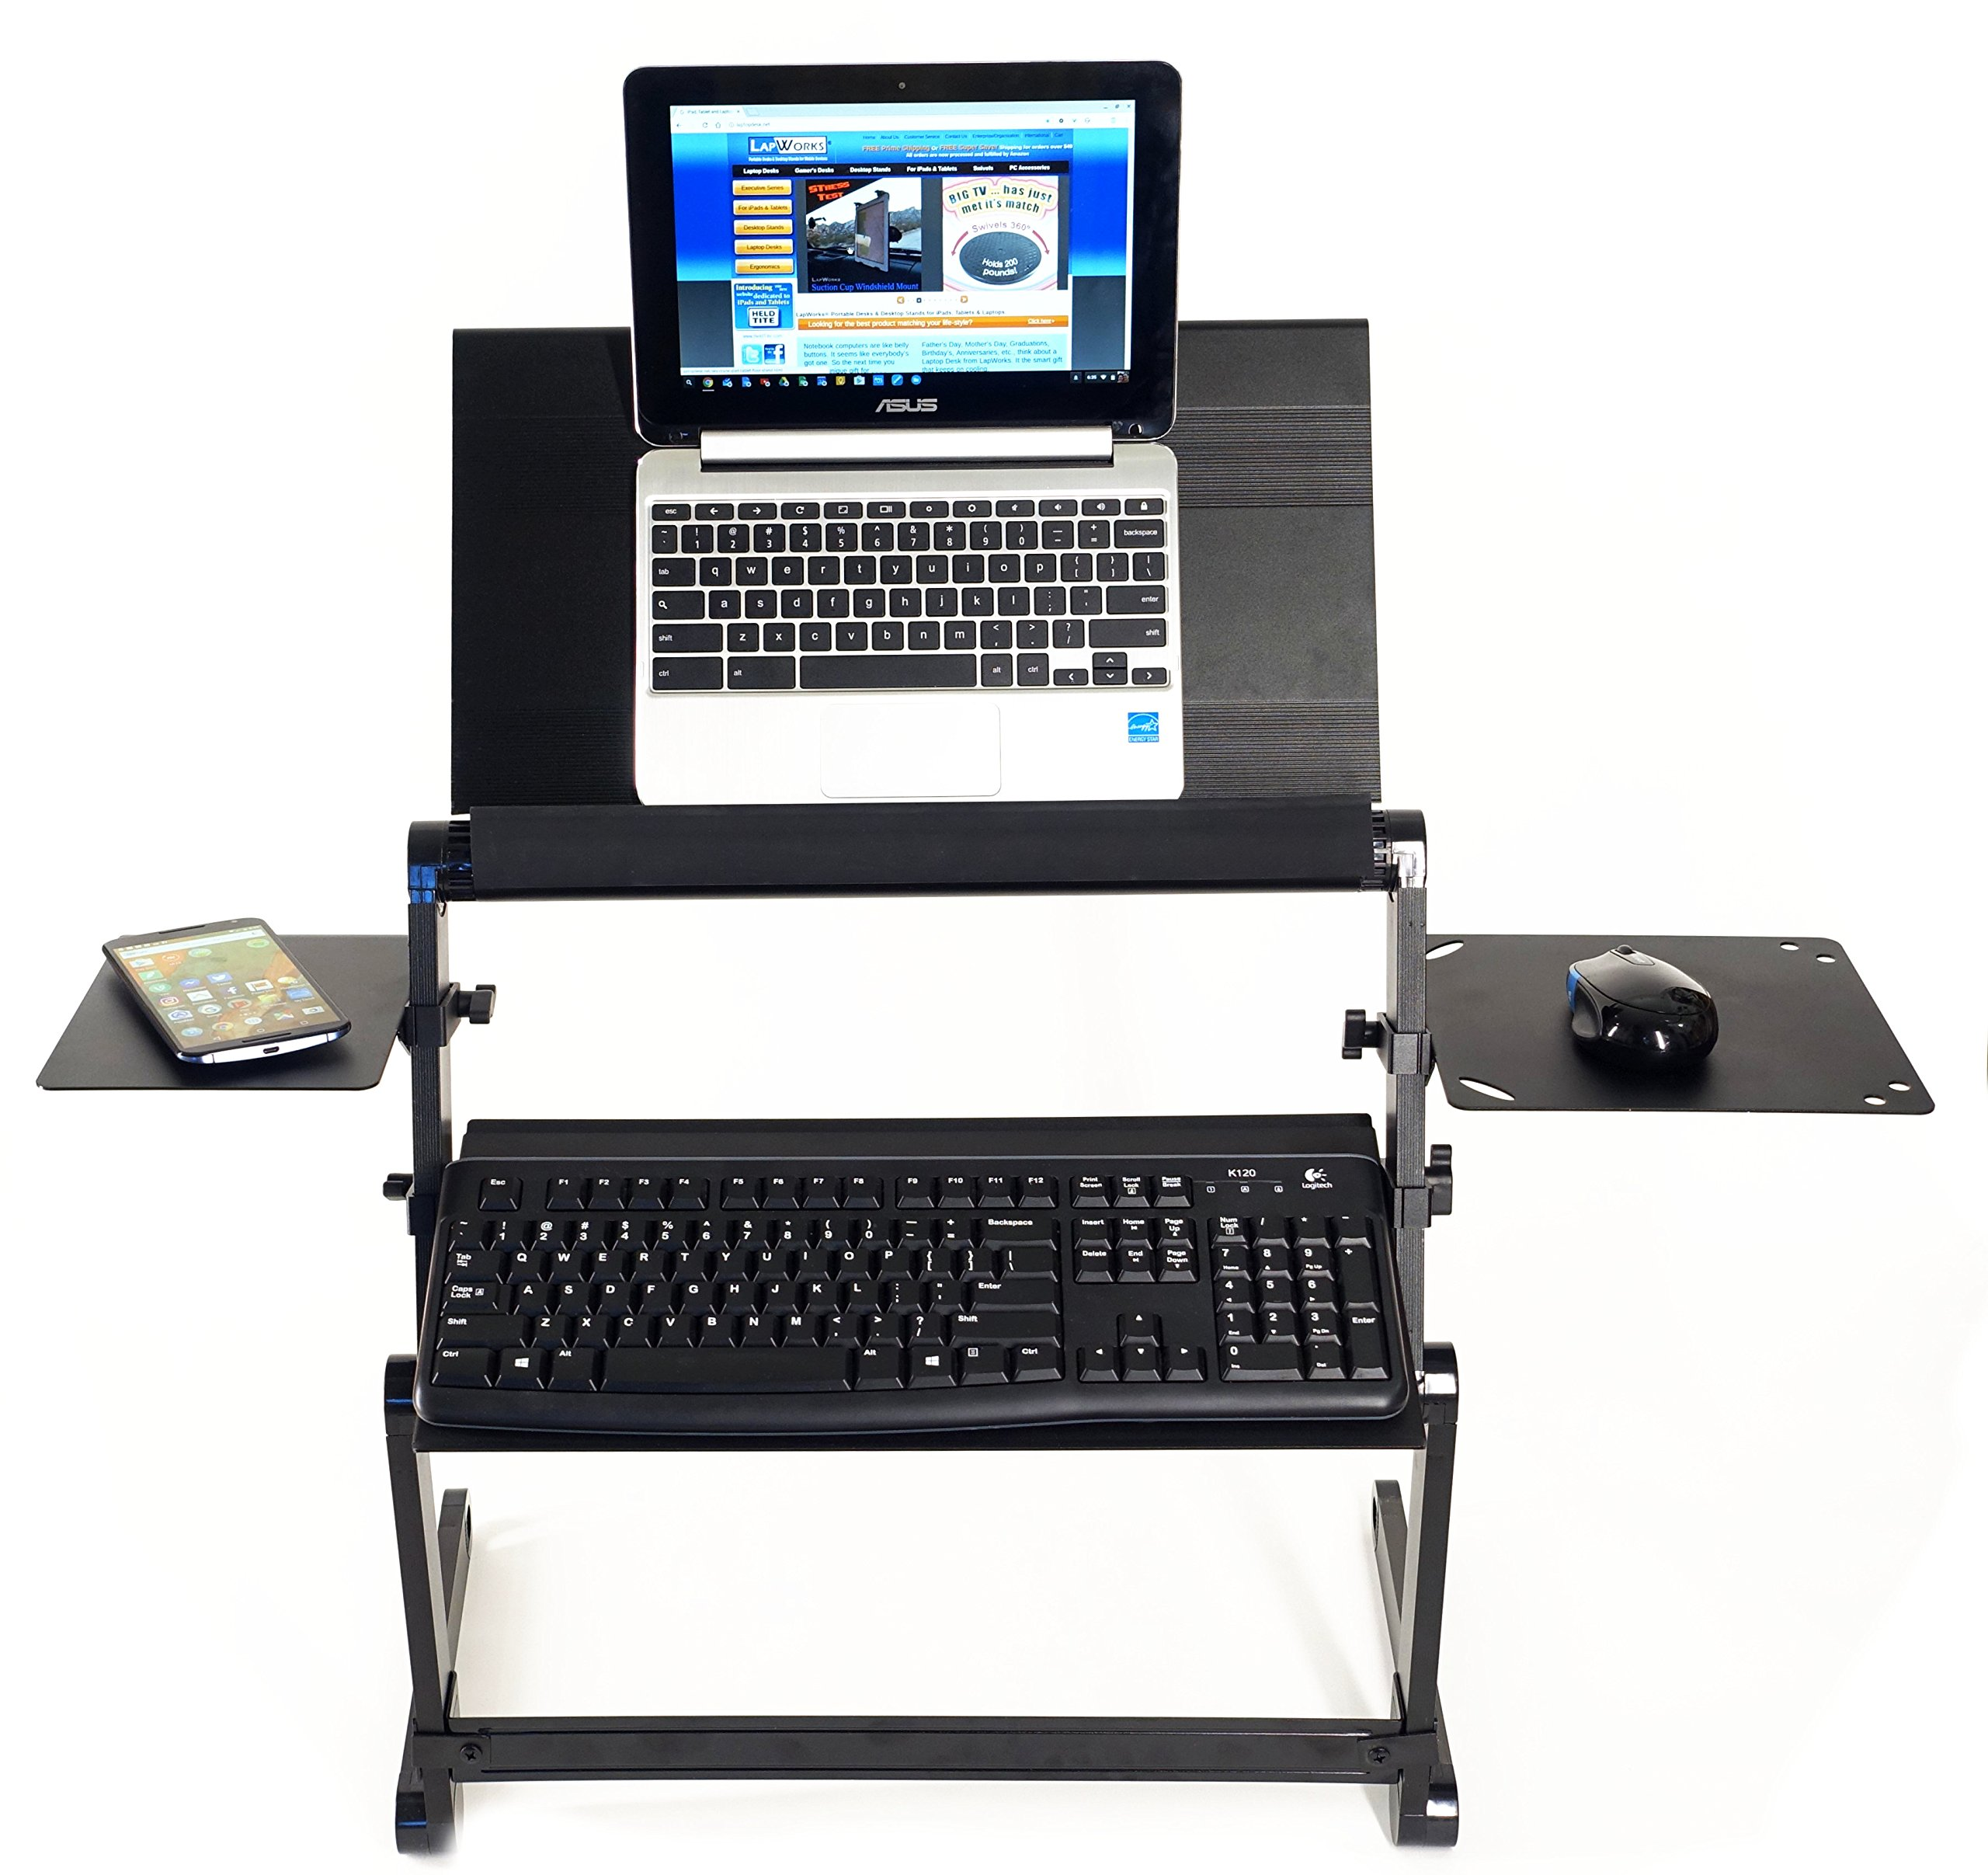 LapWorks Wizard Standing Desk for your Desktop or Table with Keyboard Tray, Stabilizer Bar, Max Mouse Pad, Regular Mouse Pad and more - Super Strong but LIghtweight Aluminum Design by LapWorks